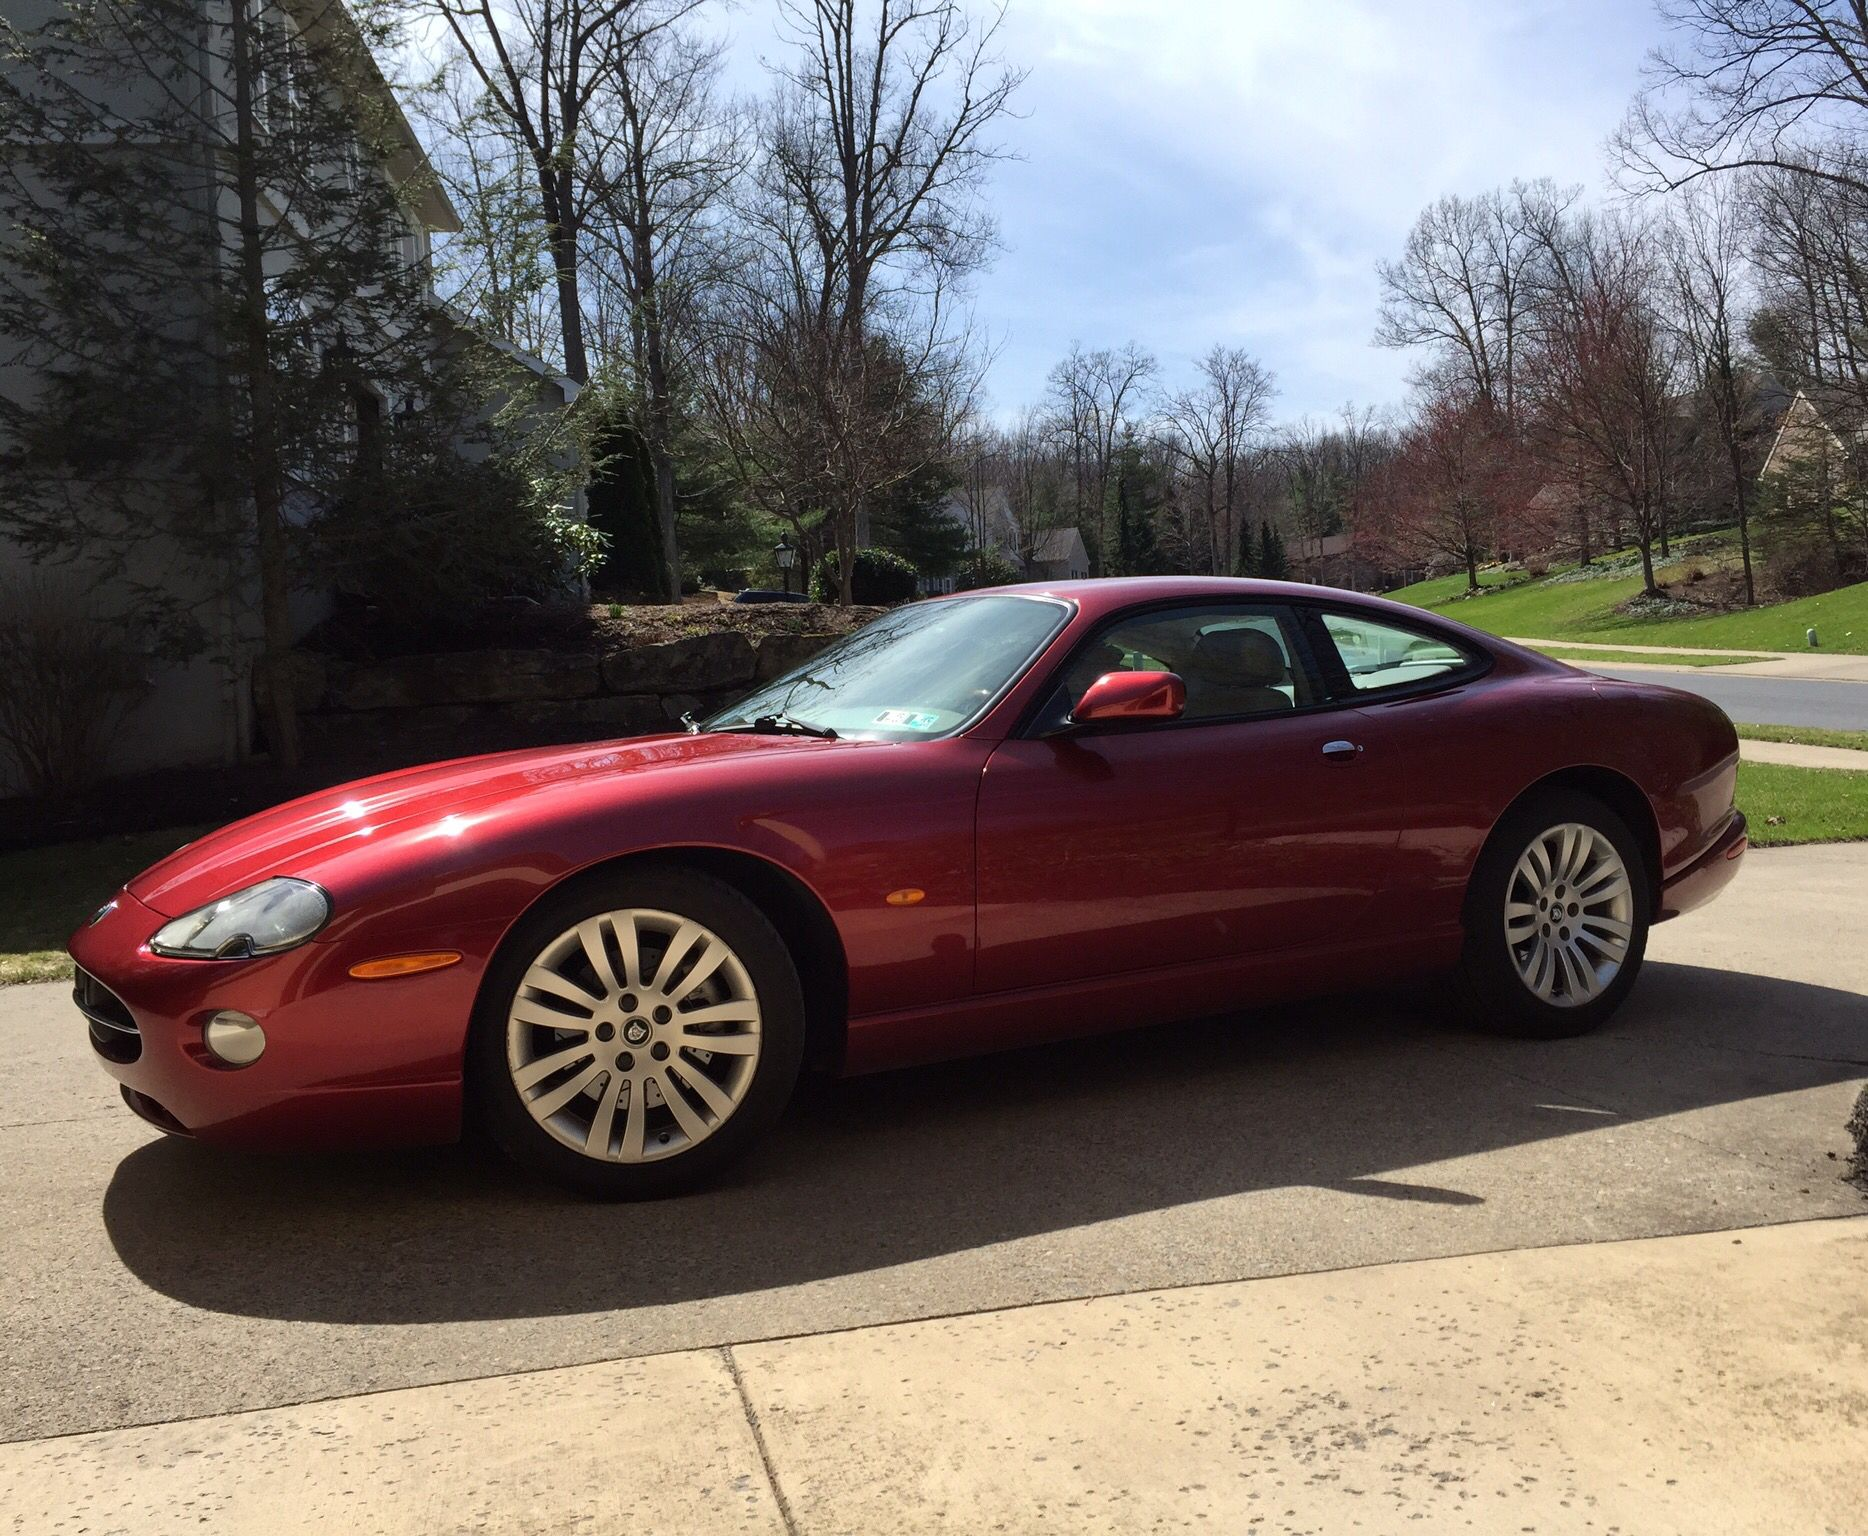 1999 jaguar xk8 coupe google cars pinterest jaguar xk8 jaguar and coupe